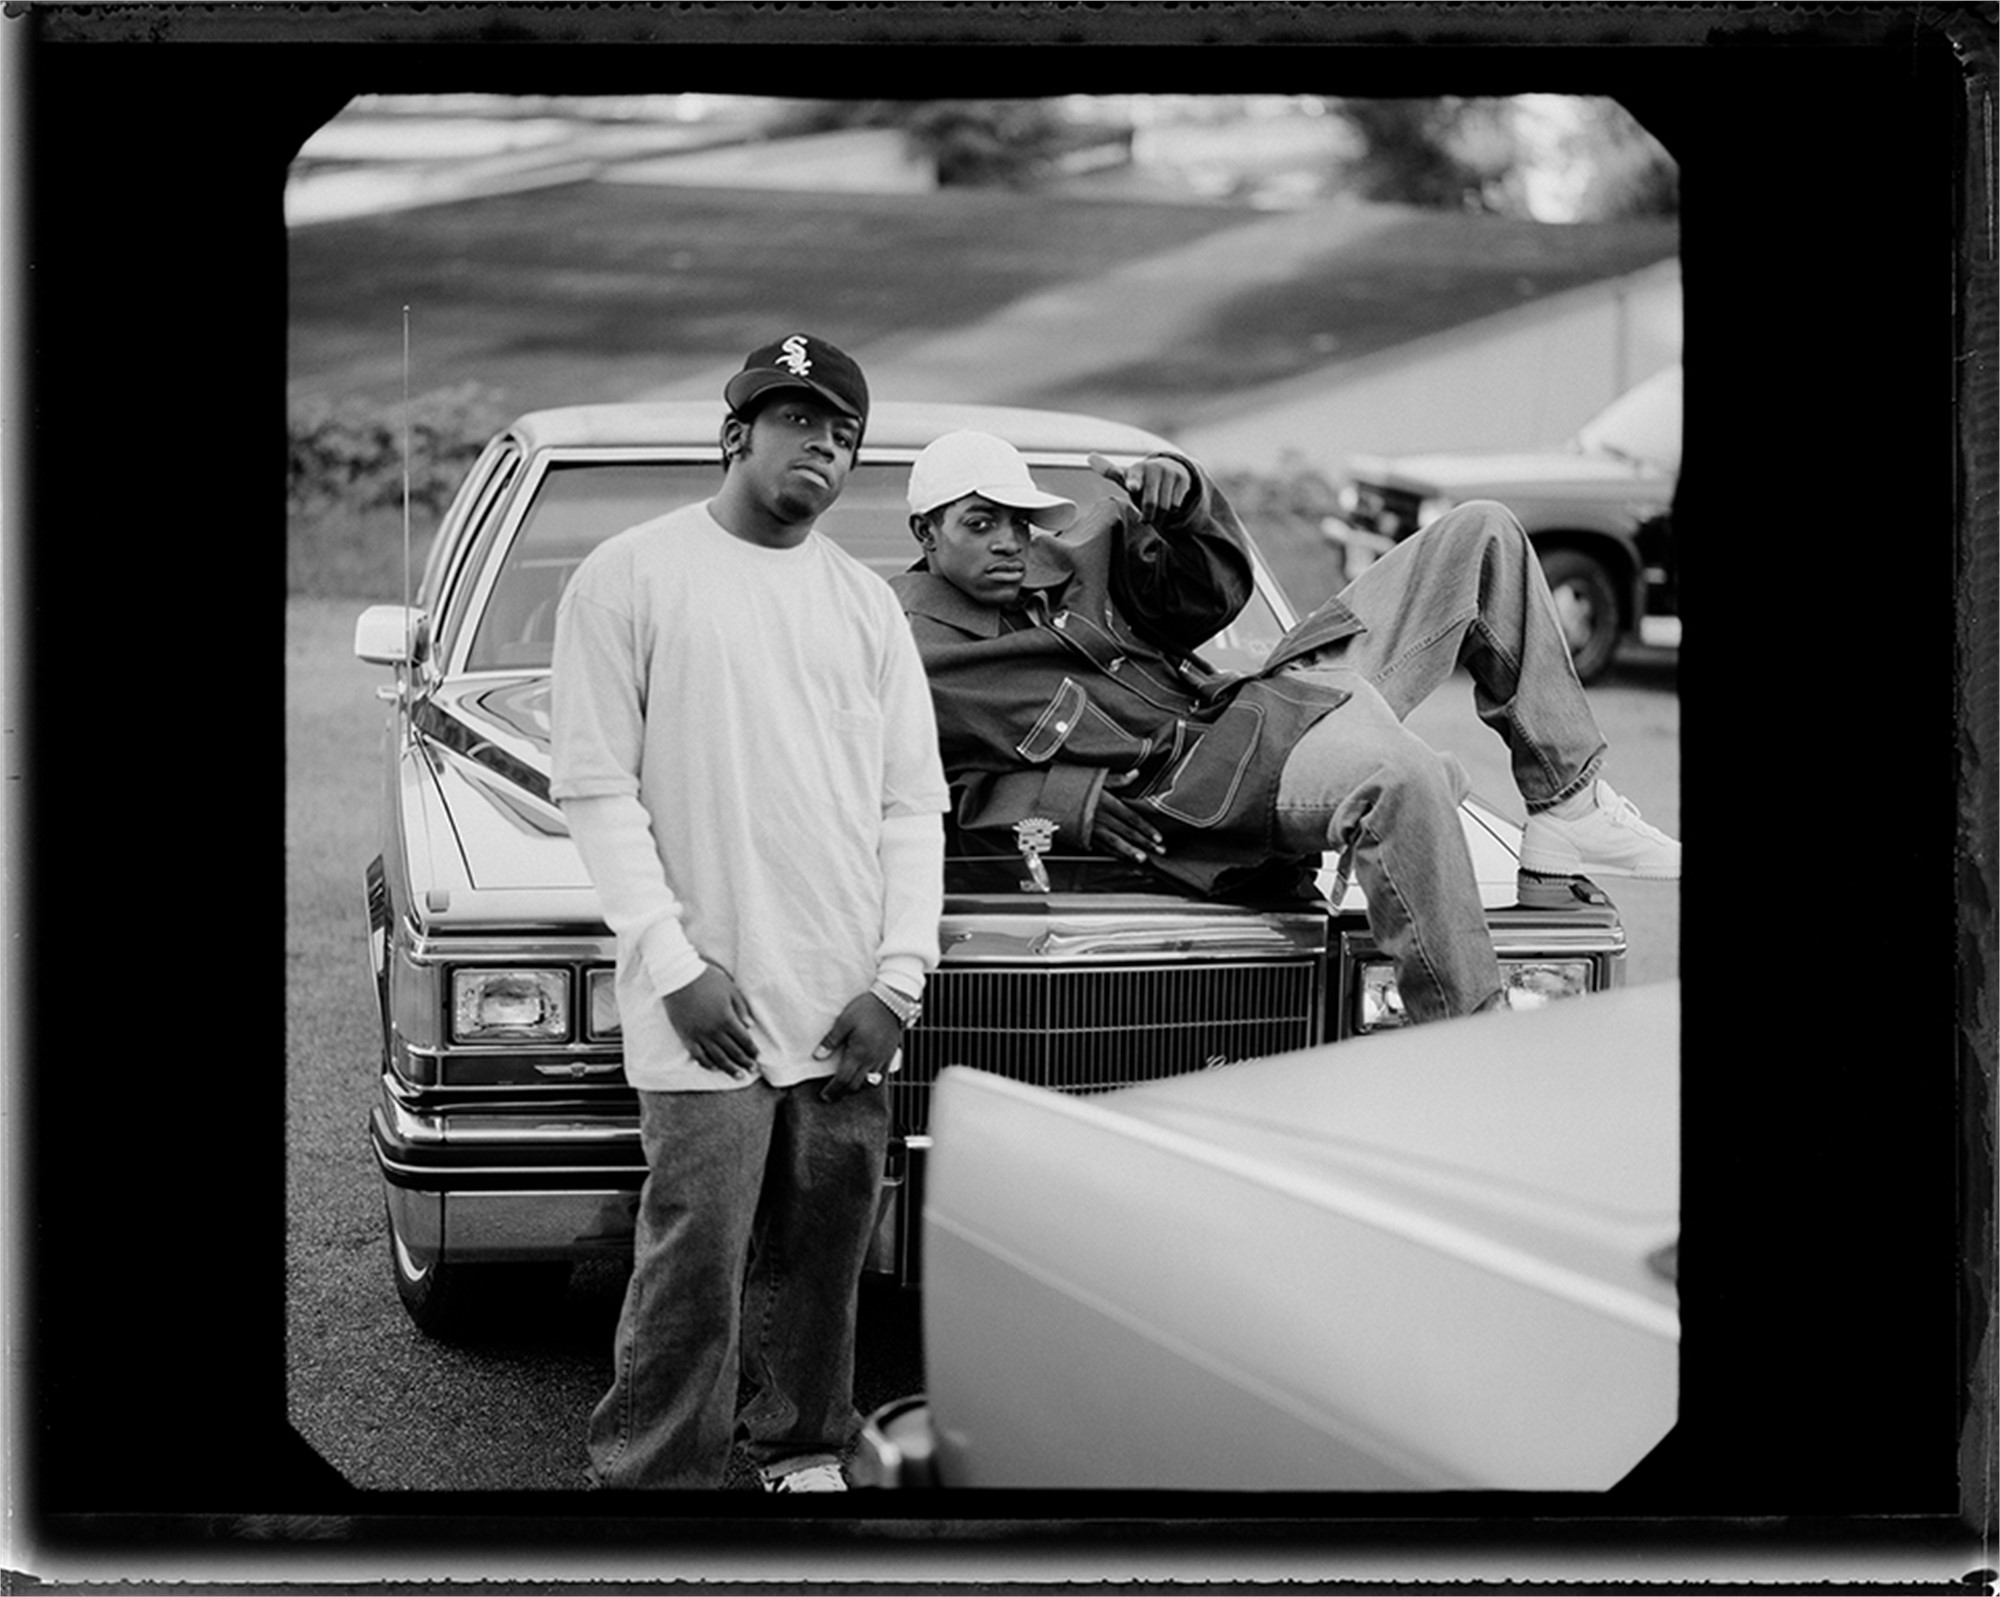 93125 Outkast On the Cadillac BW by Timothy White